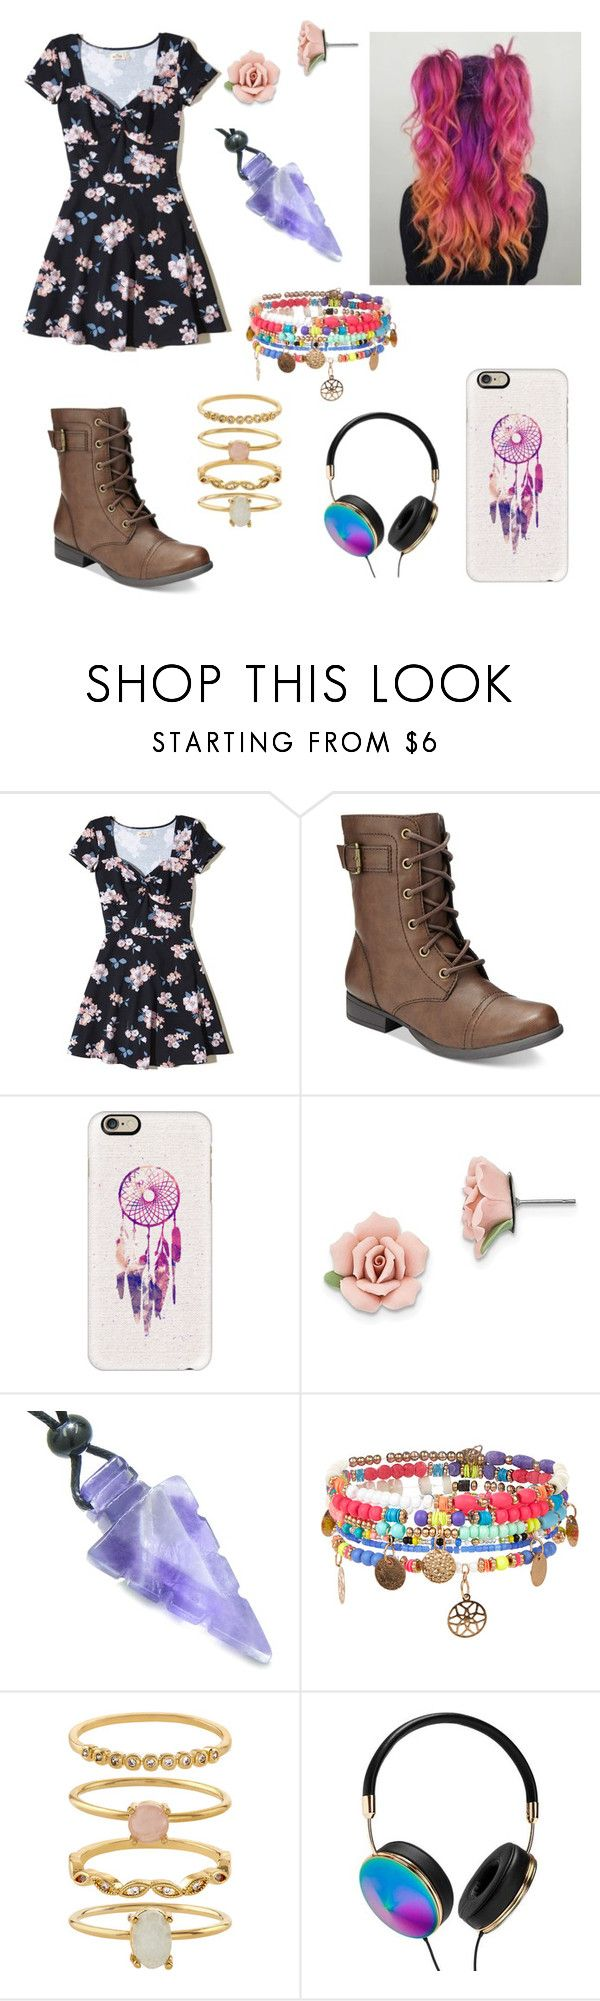 """""""She's got that one international smile"""" by shelbyelizabeth2001 ❤ liked on Polyvore featuring Hollister Co., American Rag Cie, Casetify, 1928, Monsoon, Accessorize and Frontgate"""